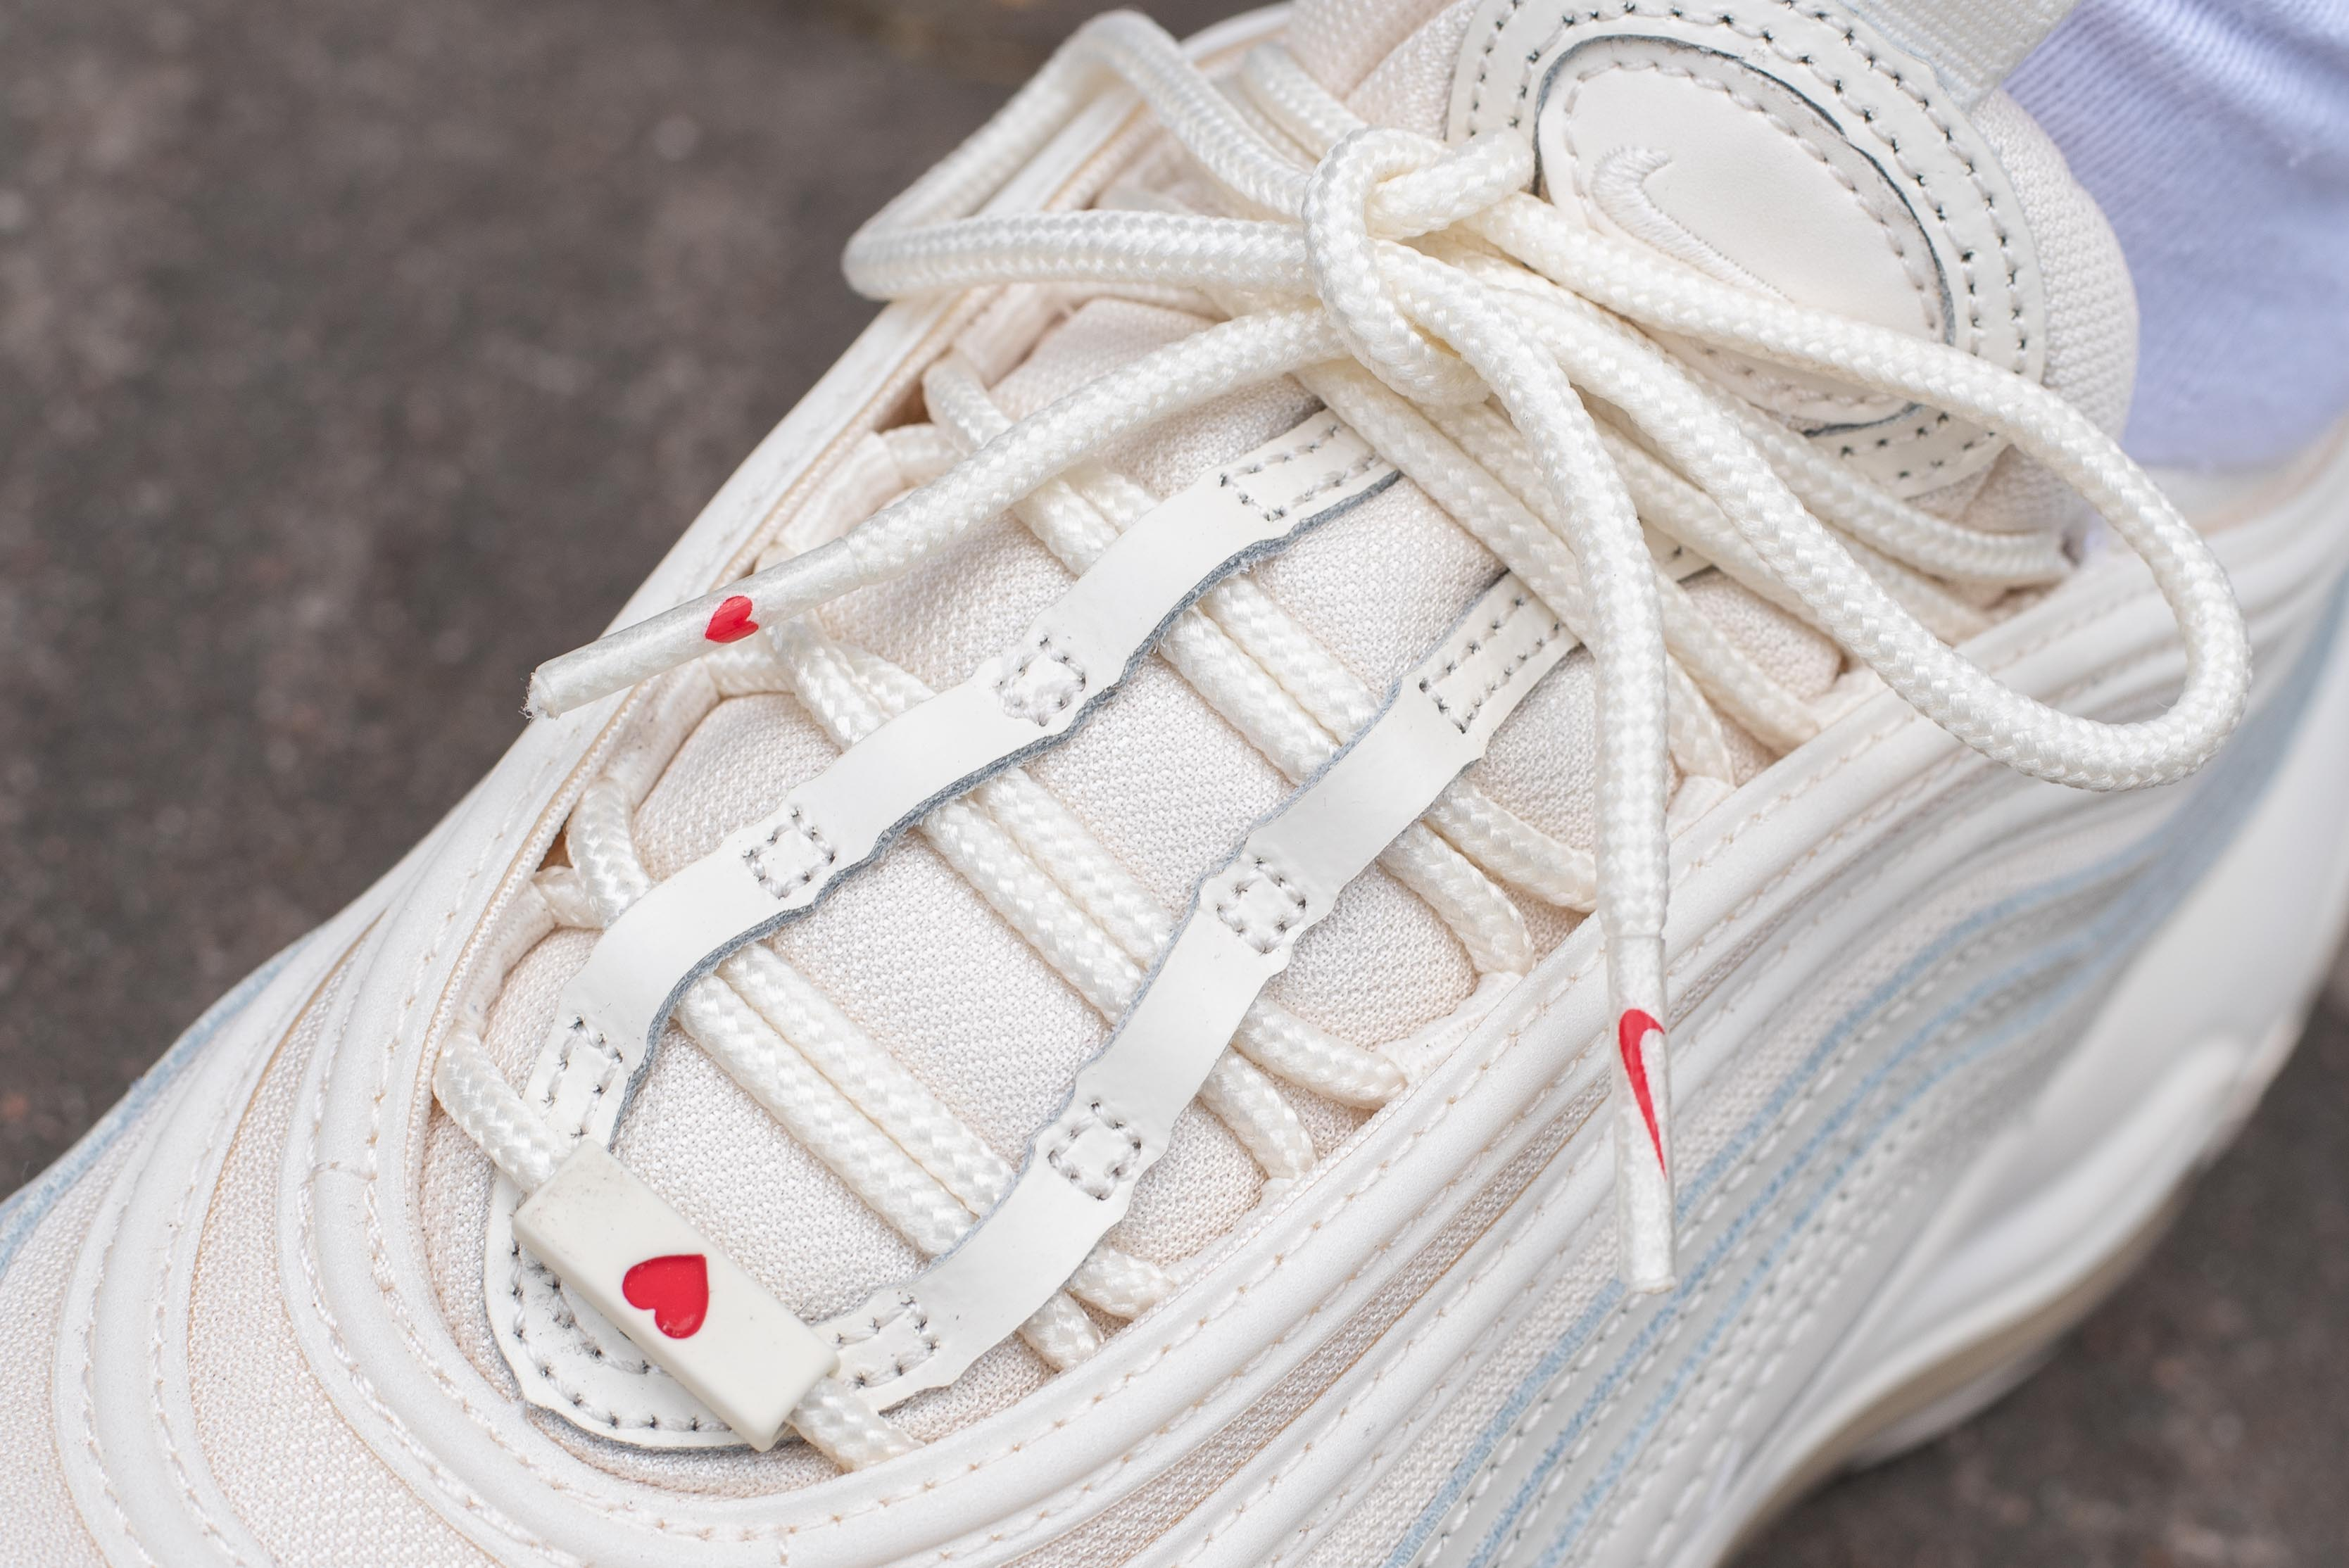 705465a166 Here Is How To Enter Our Nike Air Max 97 Love Heart Giveaway ...